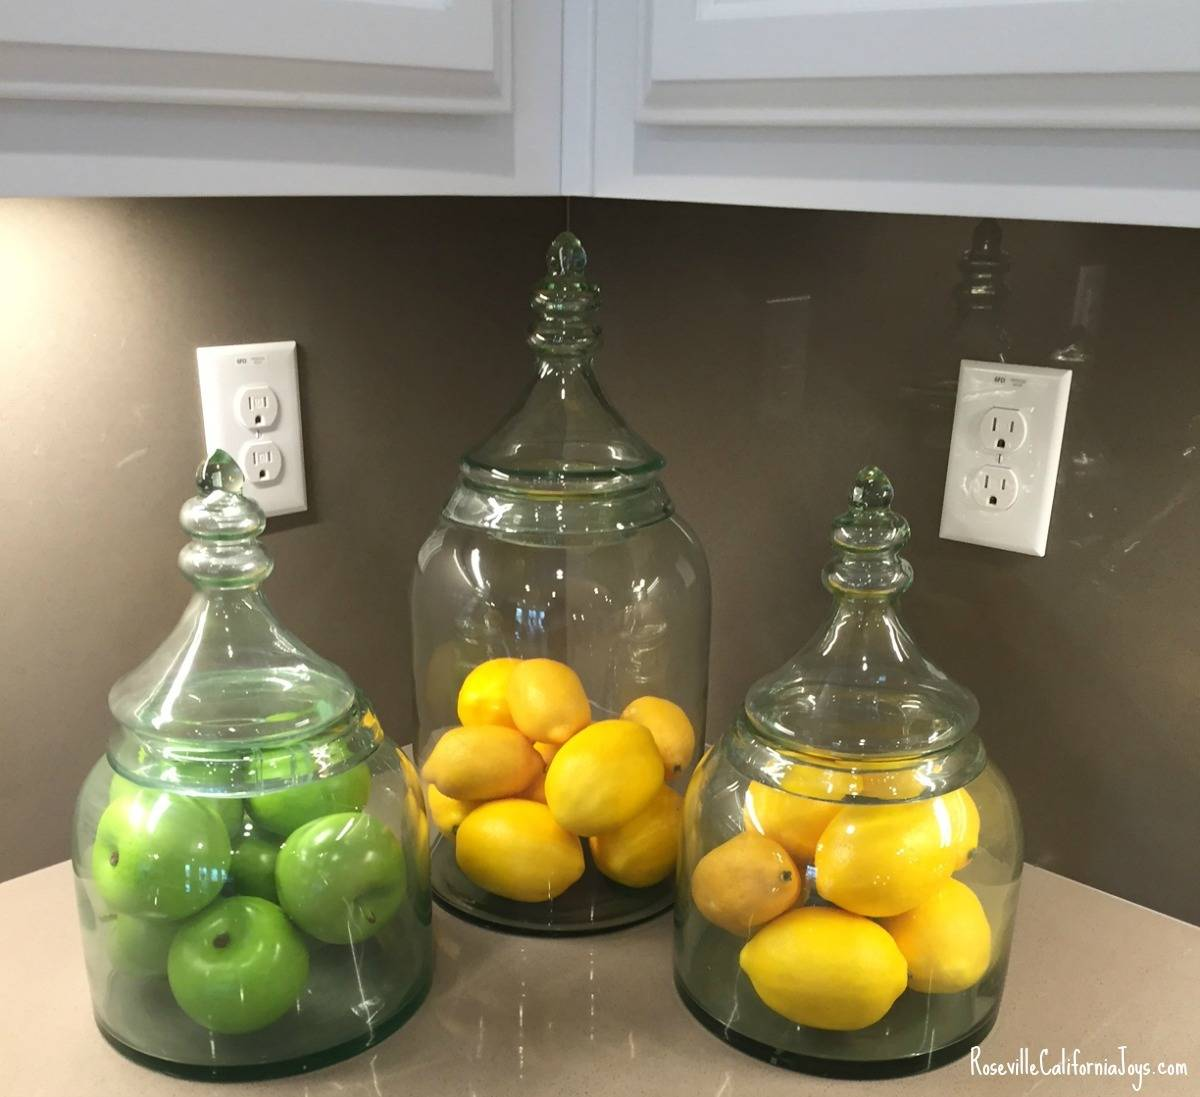 kaye swain roseville sacramento real estate agent blogger shares home decor fruit tip